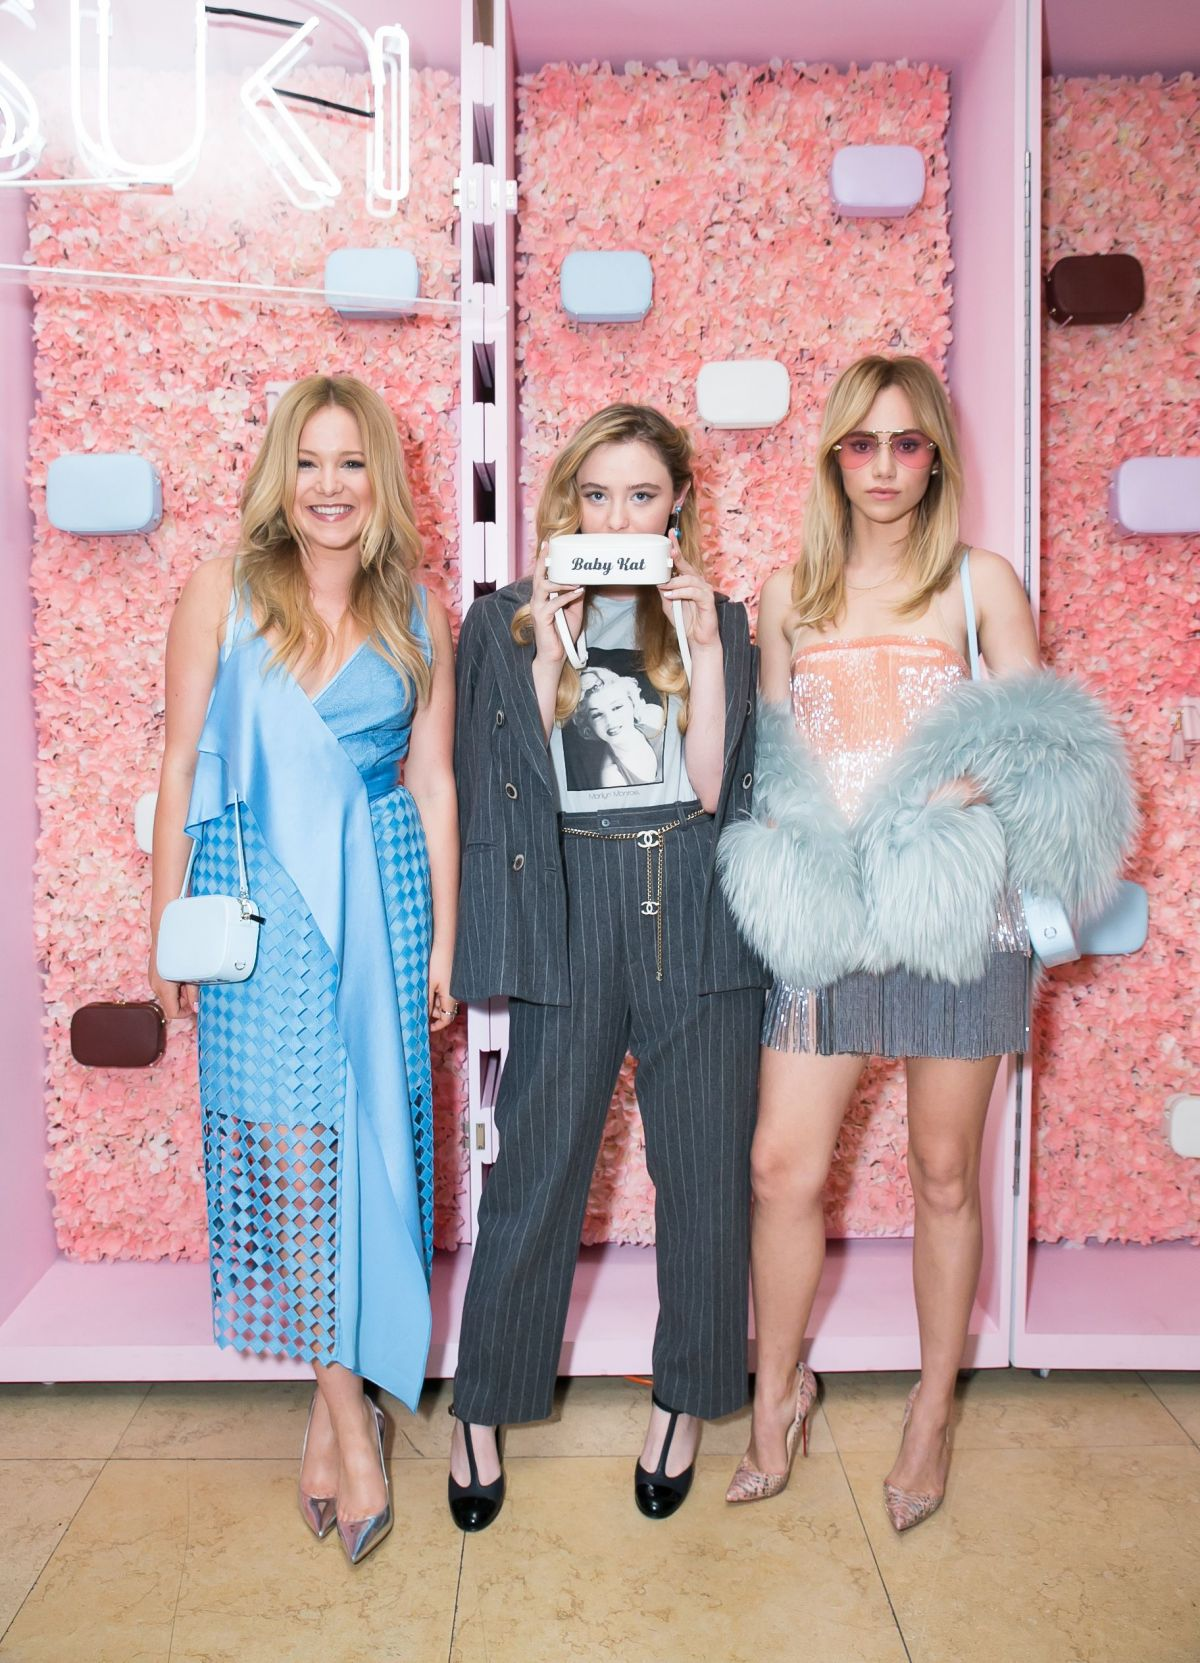 KATHRYN NEWTON at Pop & Suki Collection 2 Party in Los Angeles 04/19/2017   kathryn-newton-at-pop-suki-collection-2-party-in-los-angeles-04-19-2017_3